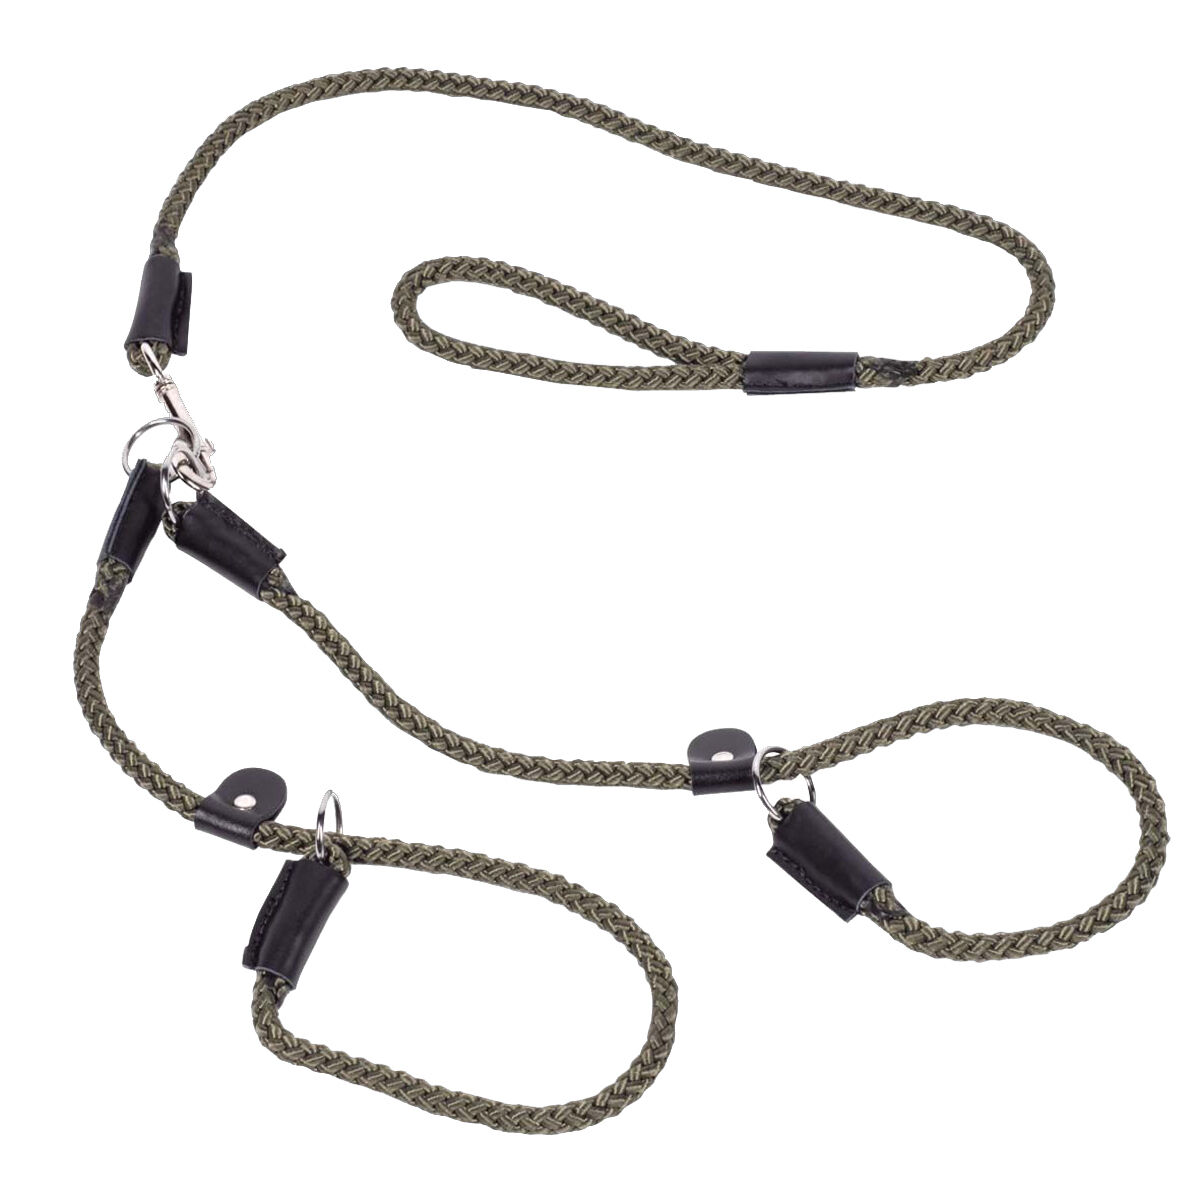 Double Gun Hunting Dog Puppy Walking Training Rope Slip Lead by Bisley